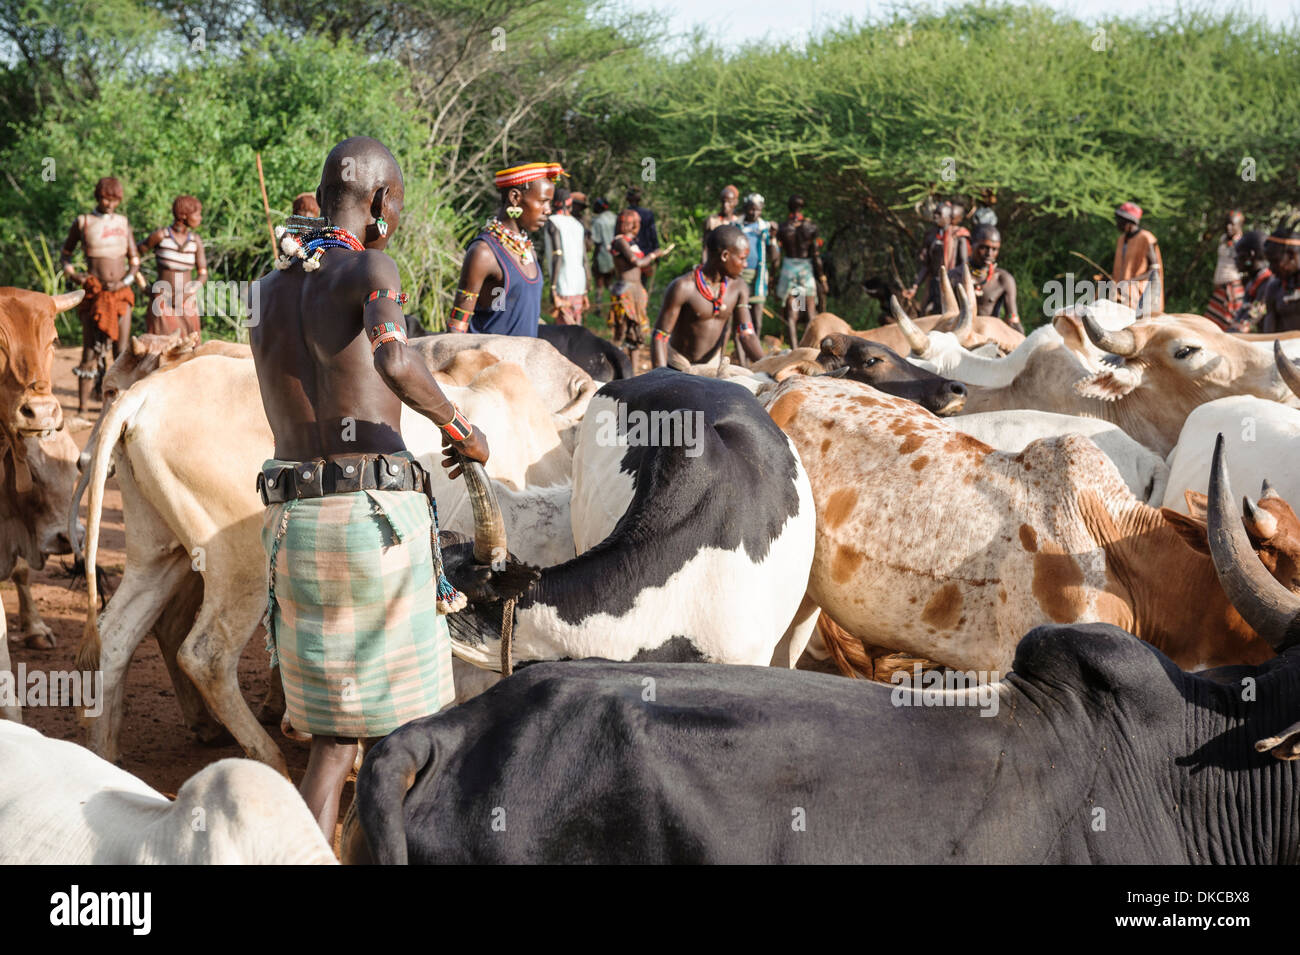 Gathering the cattle for a bull jumping ceremony. A rite of passage from boys to men. Hamer tribe, Omo valley, Ethiopia - Stock Image